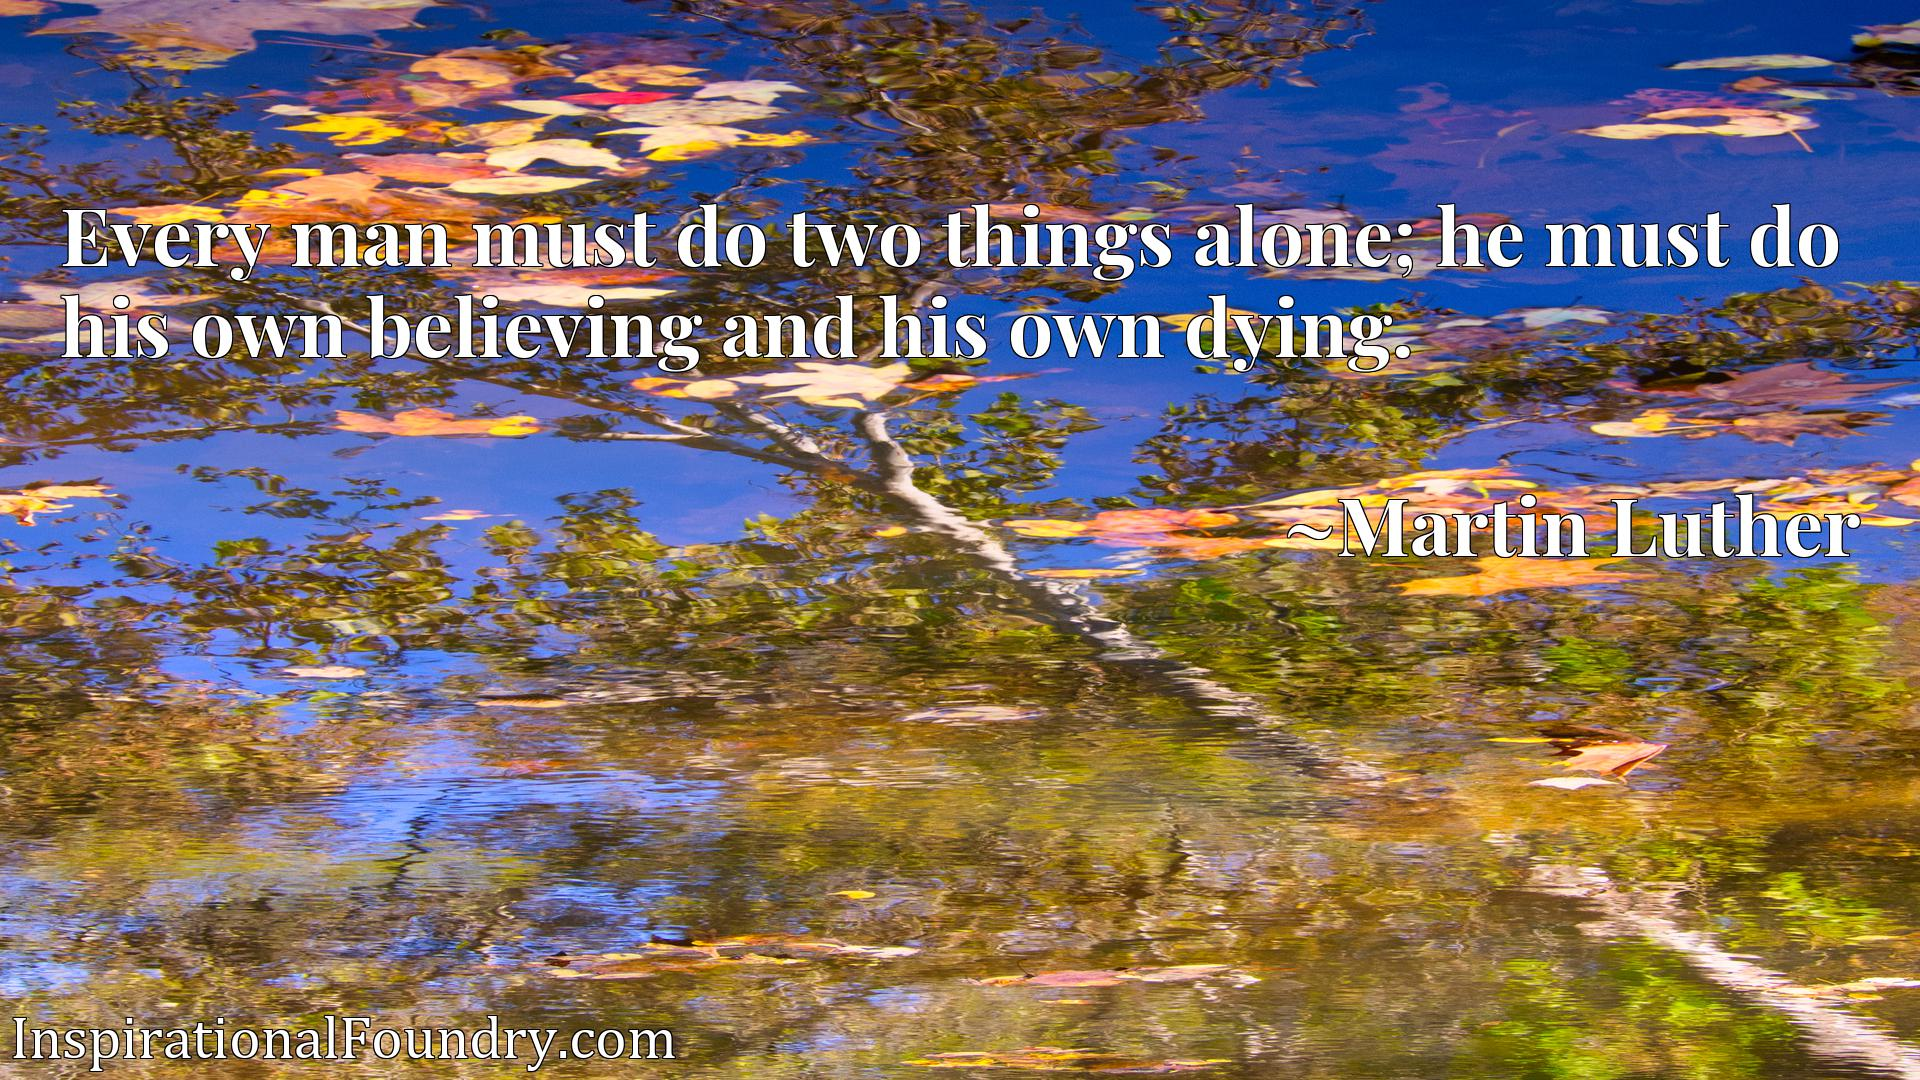 Every man must do two things alone; he must do his own believing and his own dying.